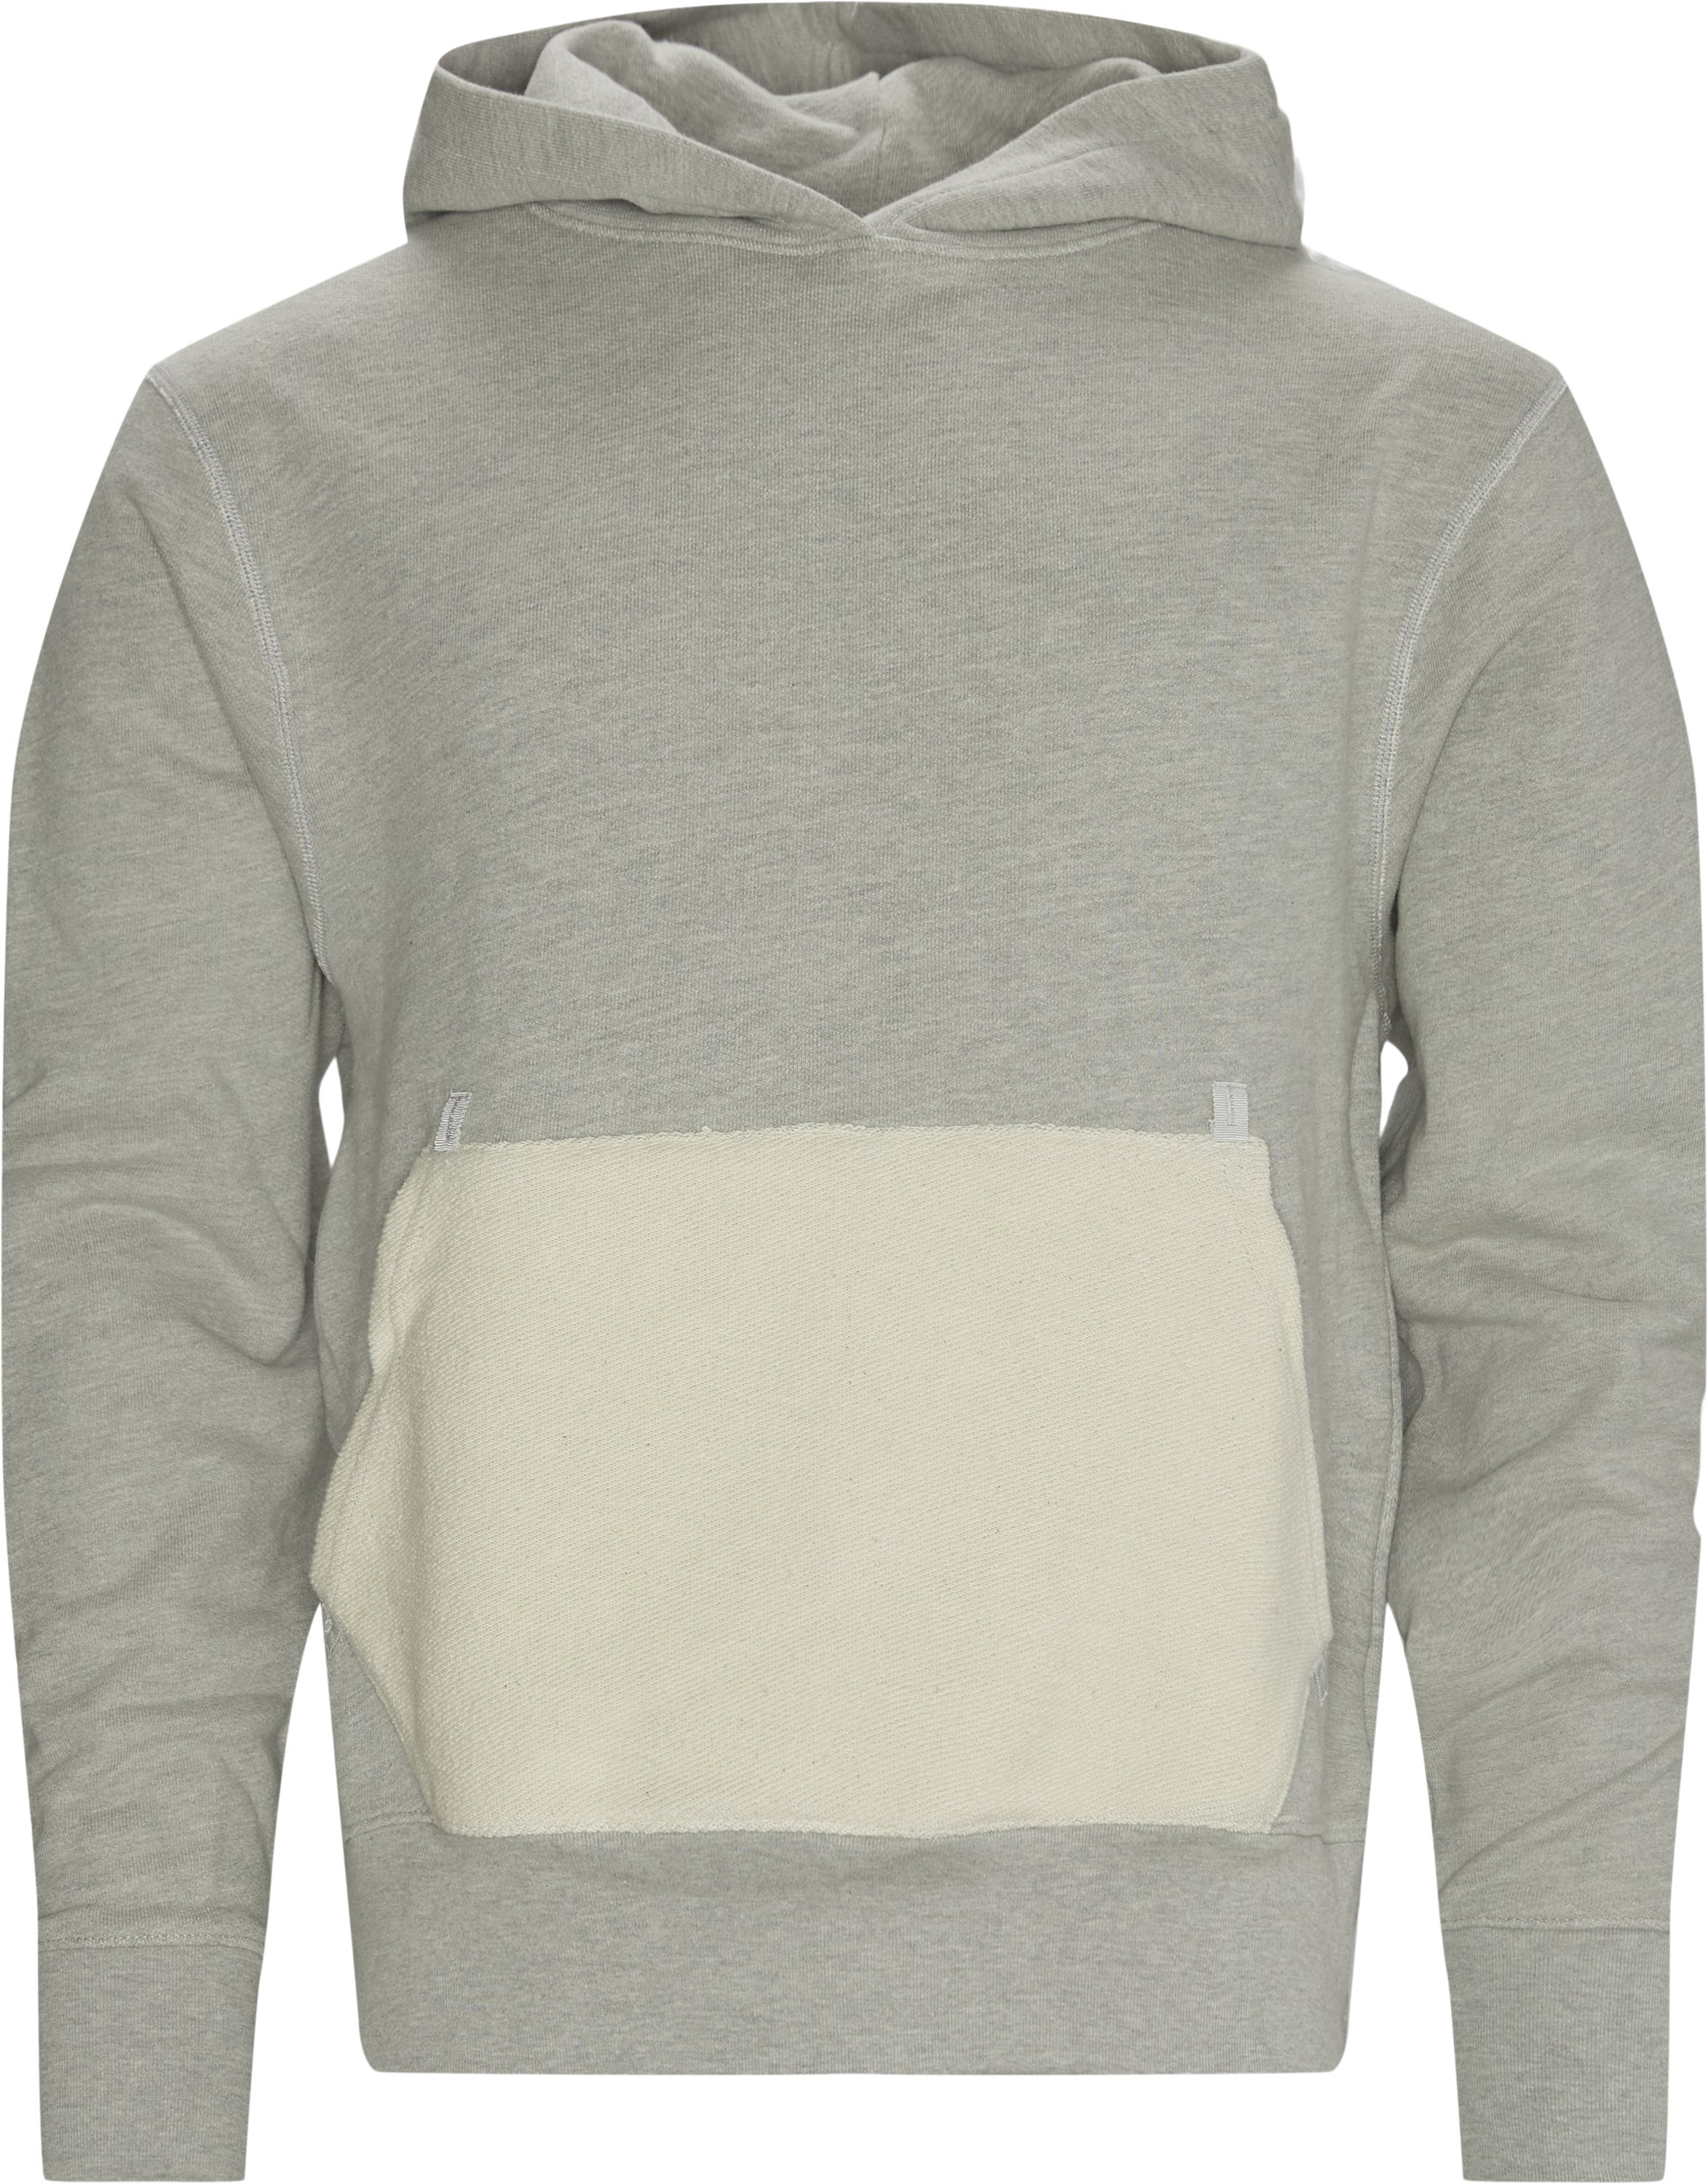 Terry Reversible Hoodie - Sweatshirts - Regular - Grå